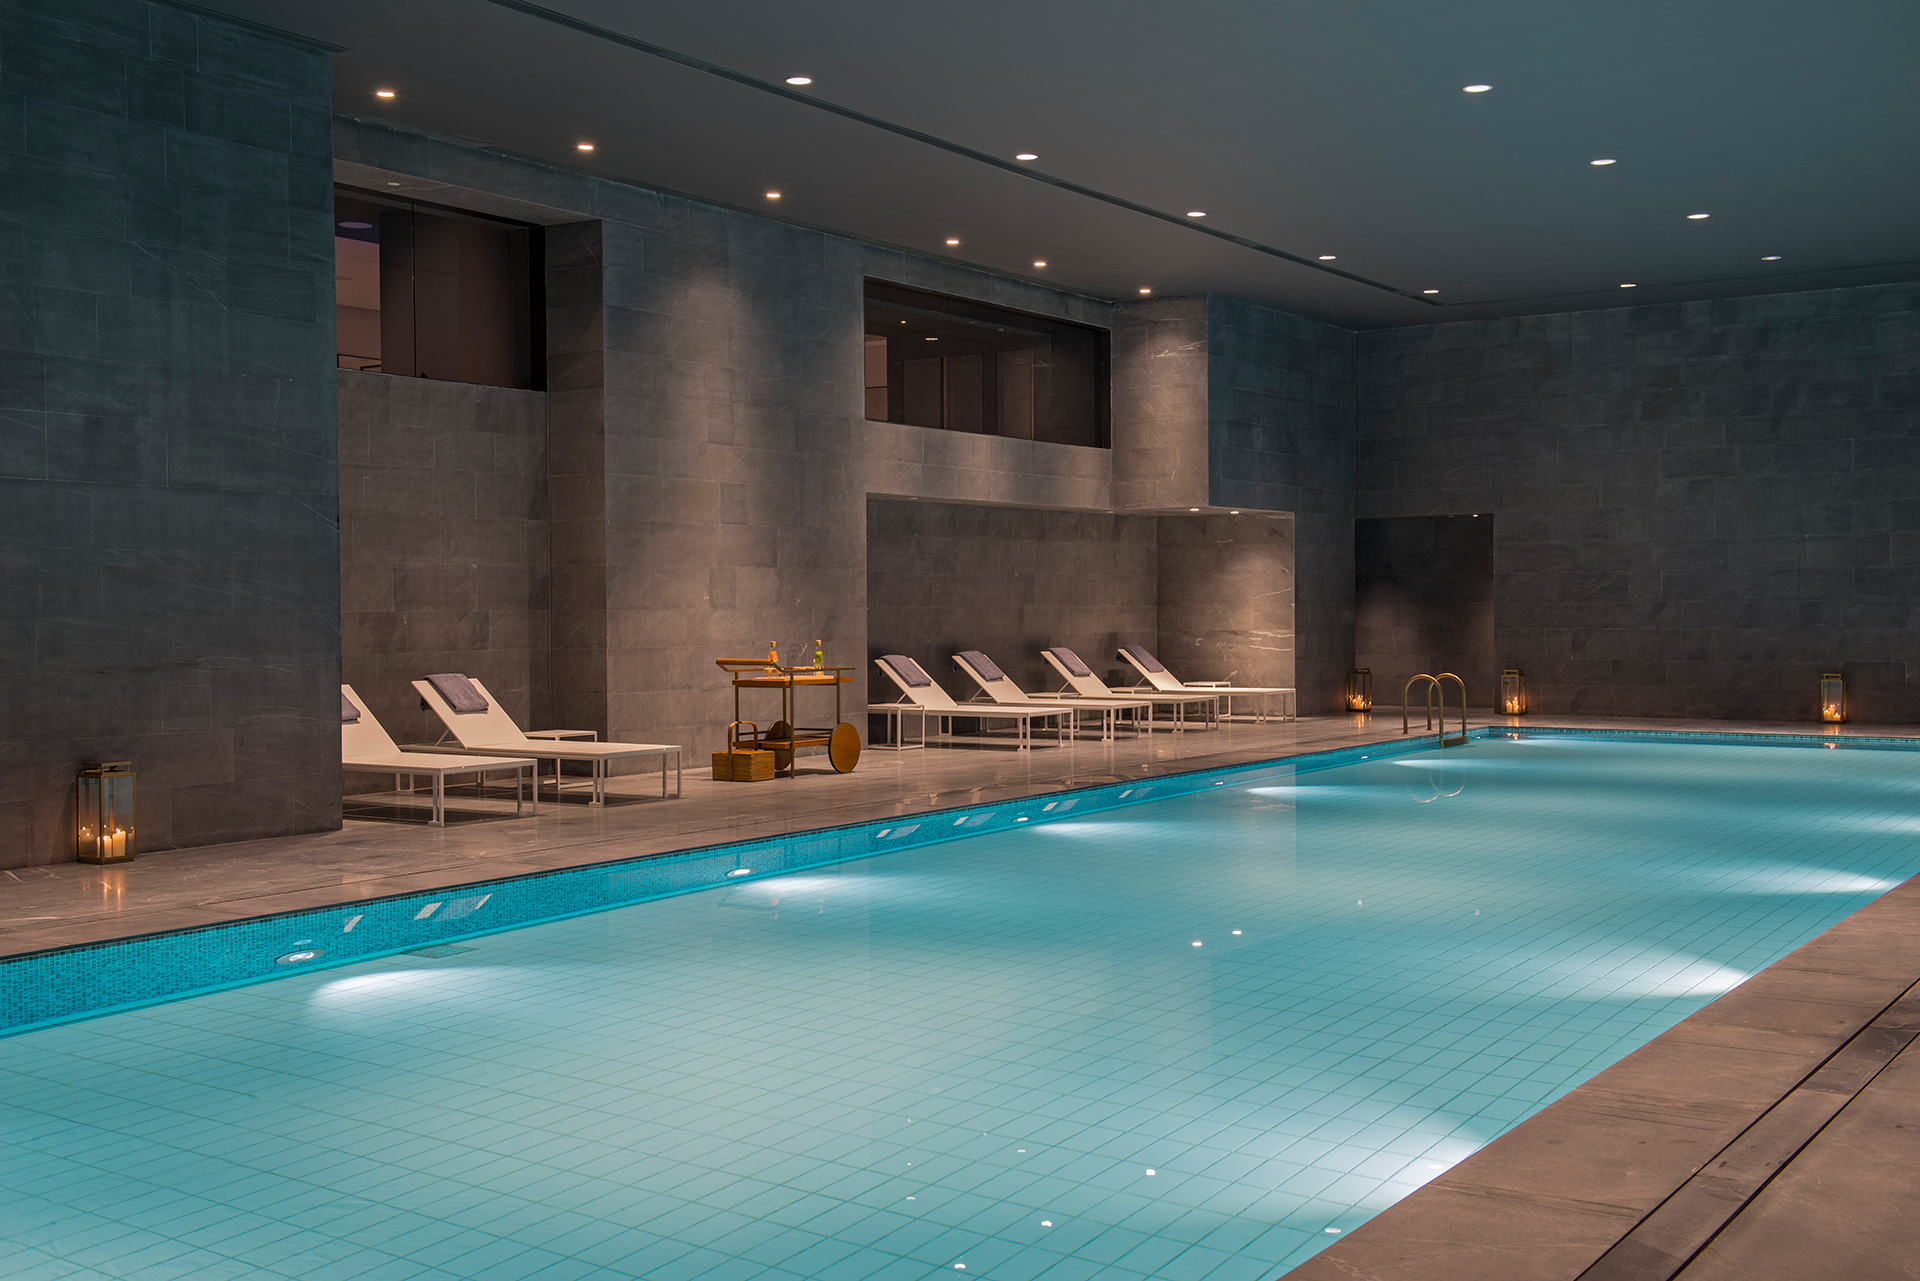 The Sukhothai Shanghai Pool an indoor mtr heated pool